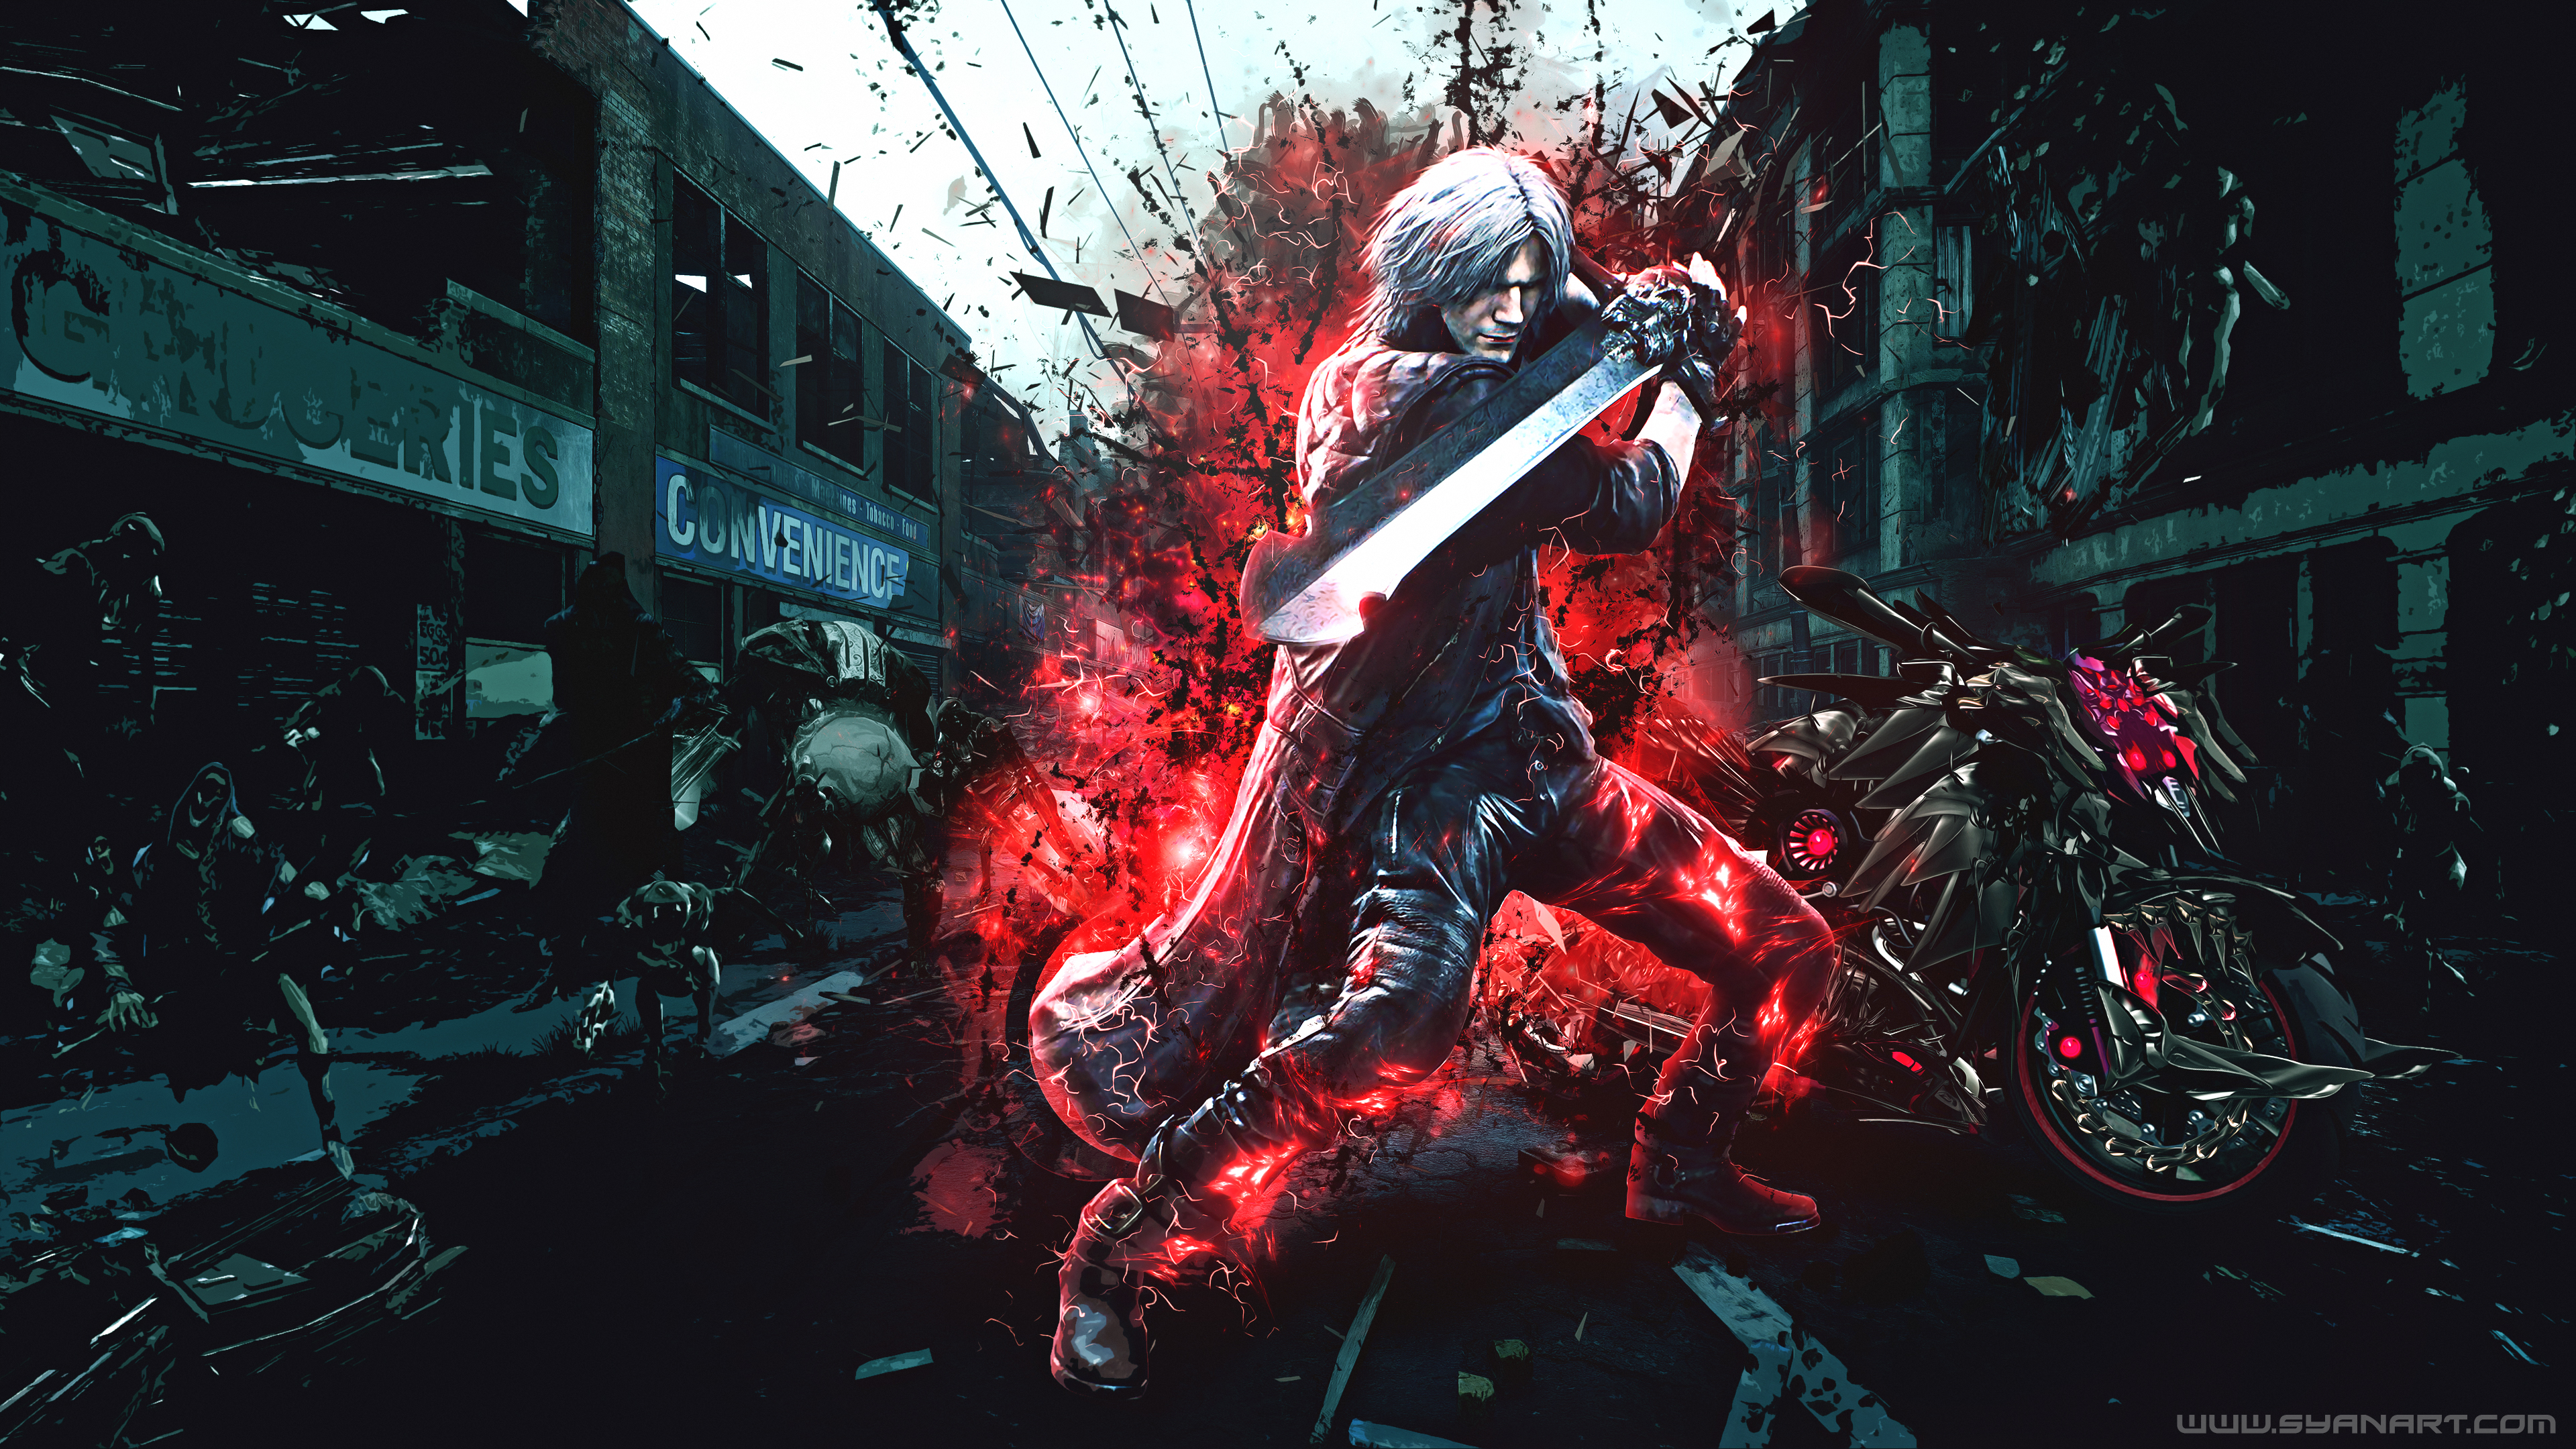 Devil May Cry 5 Dante S Motorbike 4k Wallpaper Syanart Station